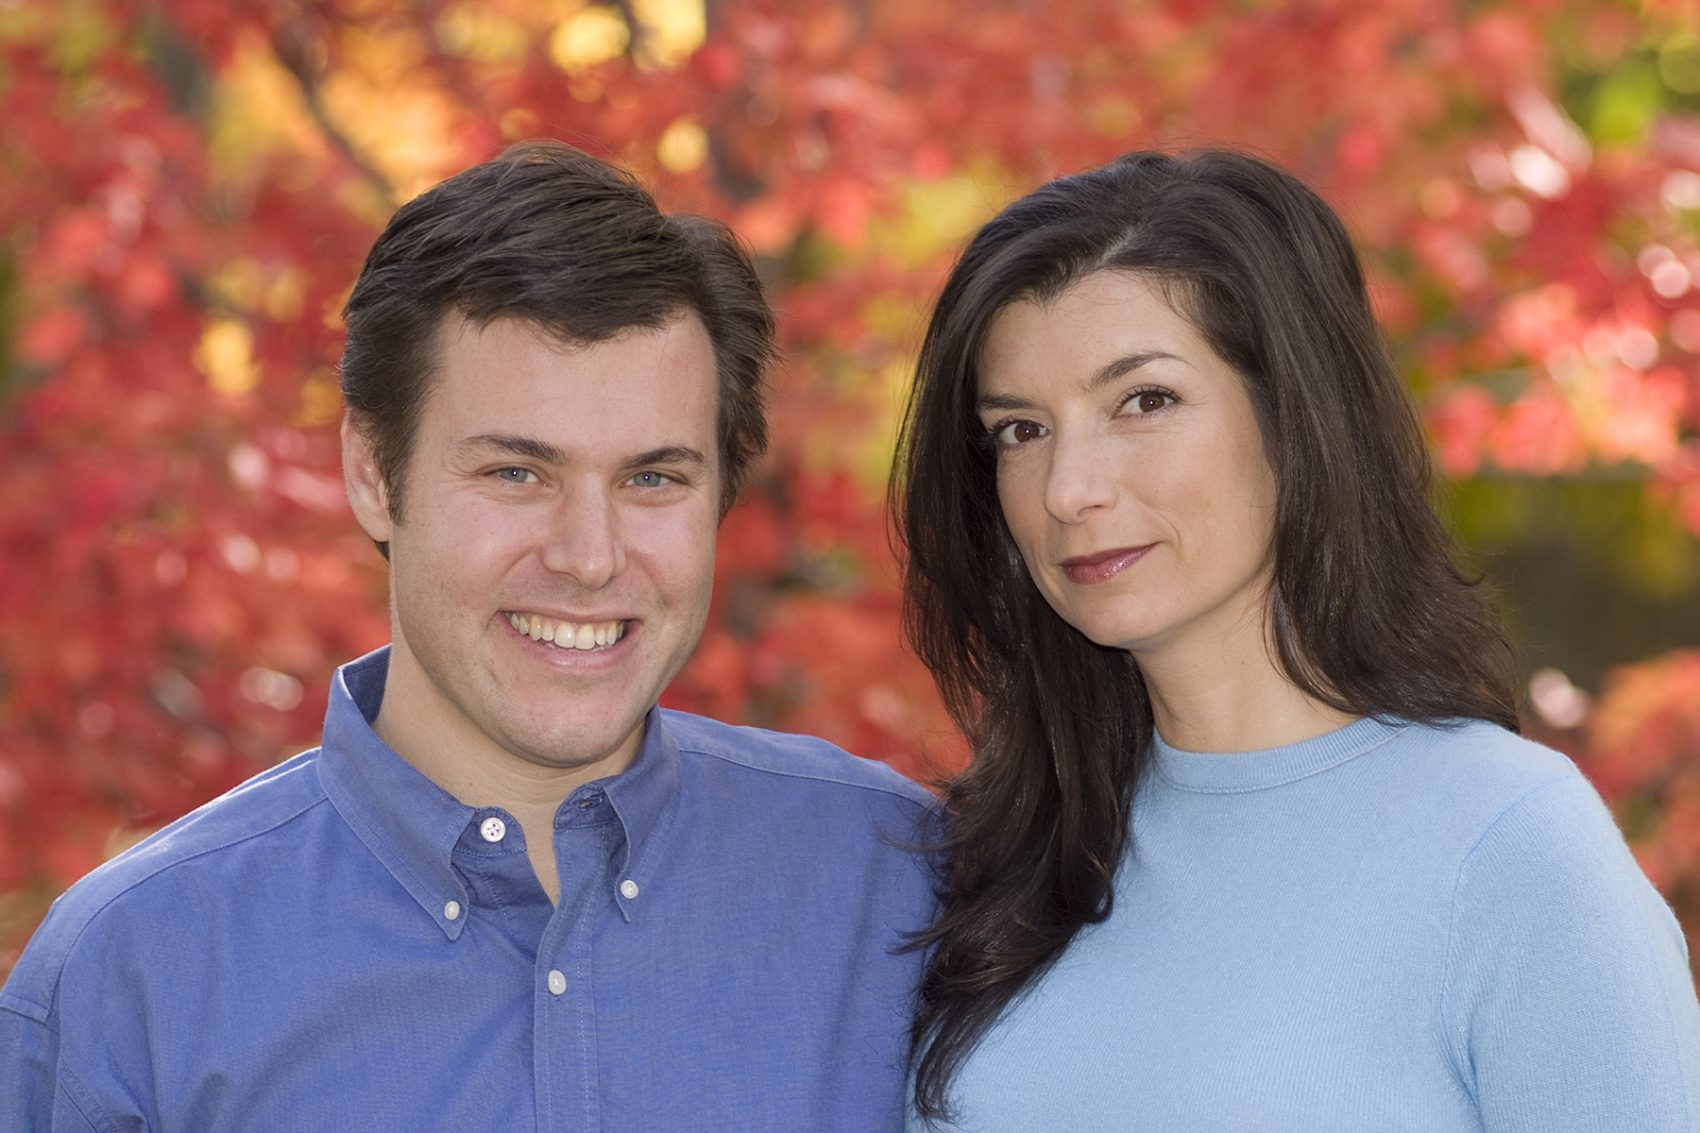 Rob Katz, CEO of Vail Resorts and his wife Elana Amsterdam. Photo: Vail Resorts. Vail Resorts Ceo Rob Katz Gives $2 Million in Grants to Support Mental & Behavioral Health Programs in Mountain Resort Communities across North America.